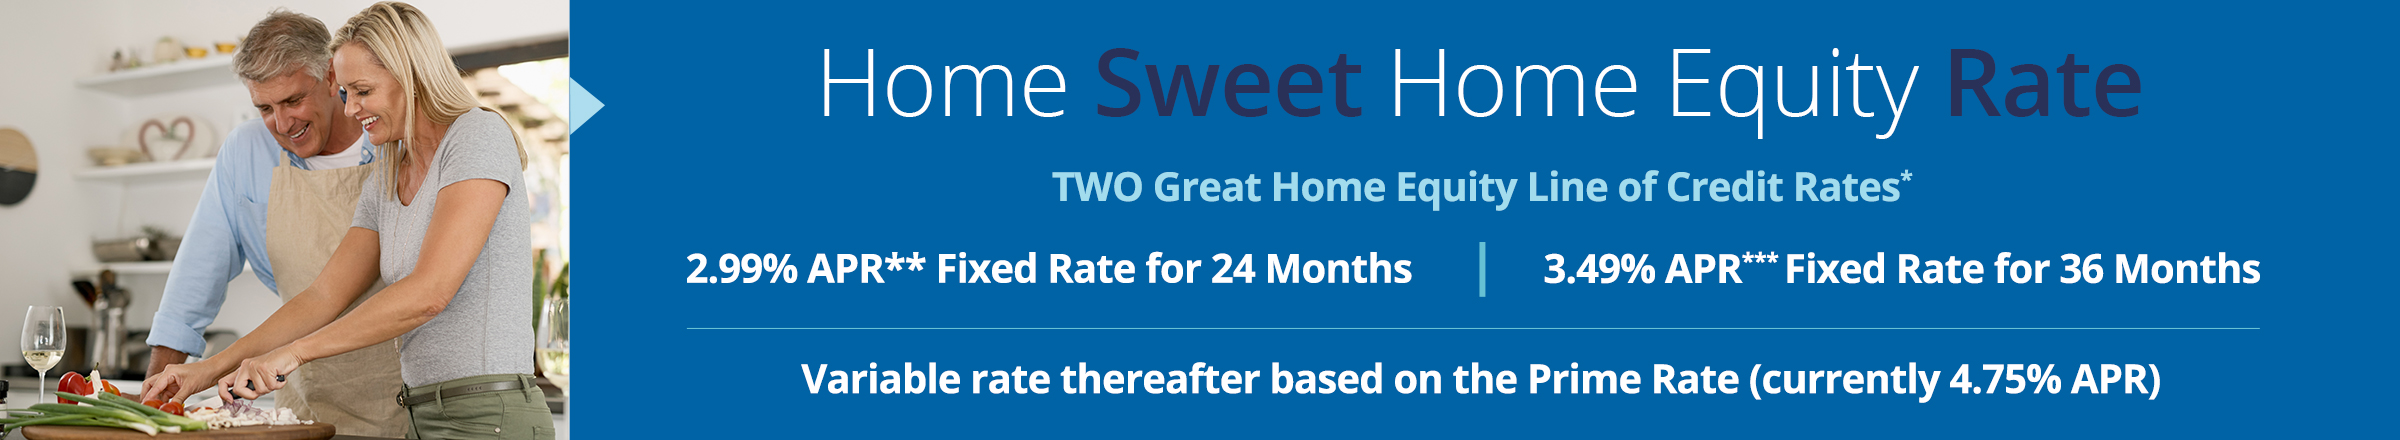 2.99% APR** Fixed Rate for 24 Months 3.49% APR** Fixed Rate for 36 Months Variable Rate Thereafter based on Prime Rate (currently 4.75%APR)